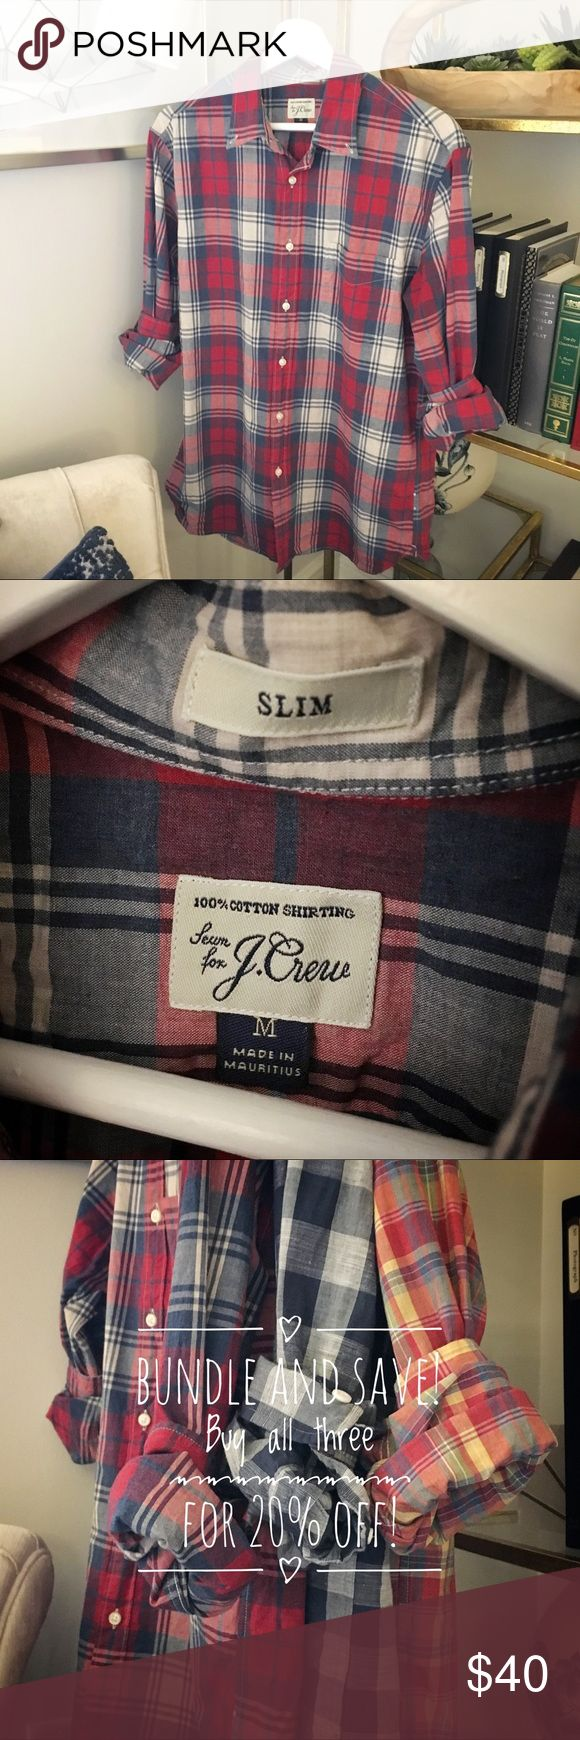 J.Crew Madras Shirt (Men's M Slim) Almost-new condition; husband only wore two or three times before deciding he is not a fan of slim fit. Buy all three shirts for 20% off. *Note: These are J.Crew shirts NOT the J.Crew Factory outlet brand. J.Crew Shirts Casual Button Down Shirts